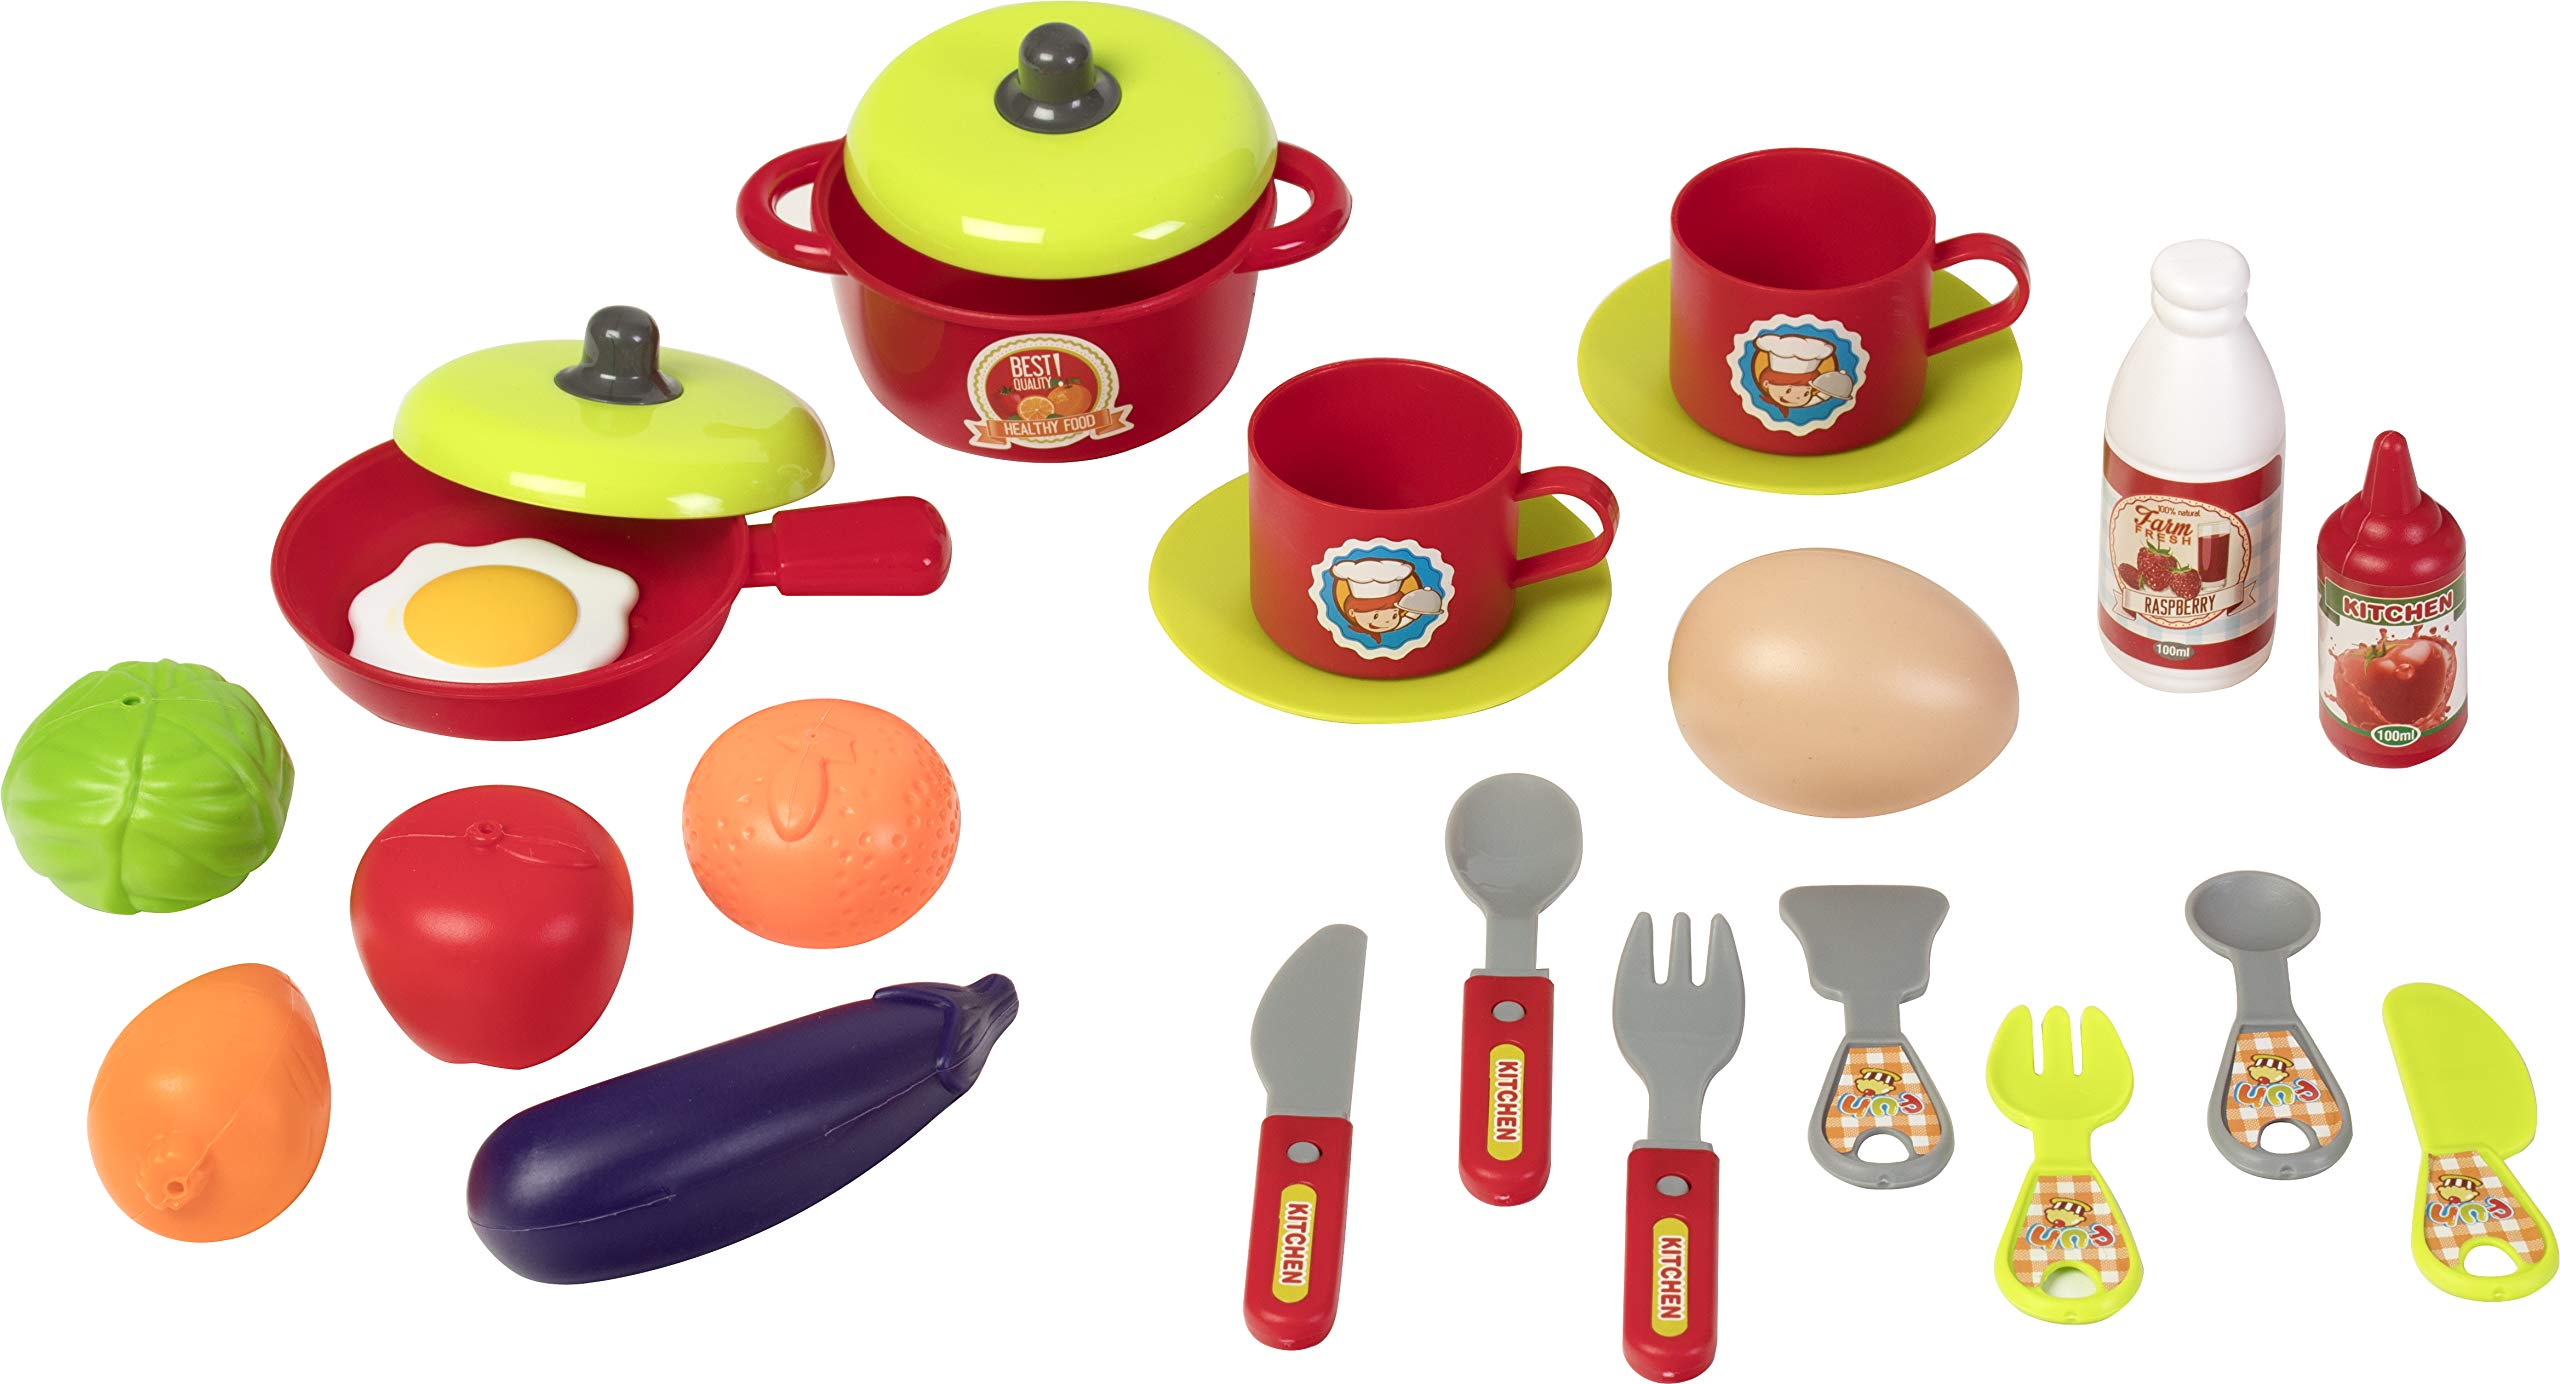 Kitchen Cook Grill Boys Playset Oven Stove, Vegetables, Pots & Pans, Cups, Utensils w/ Compact Carry Case by Kitchen Cook (Image #5)